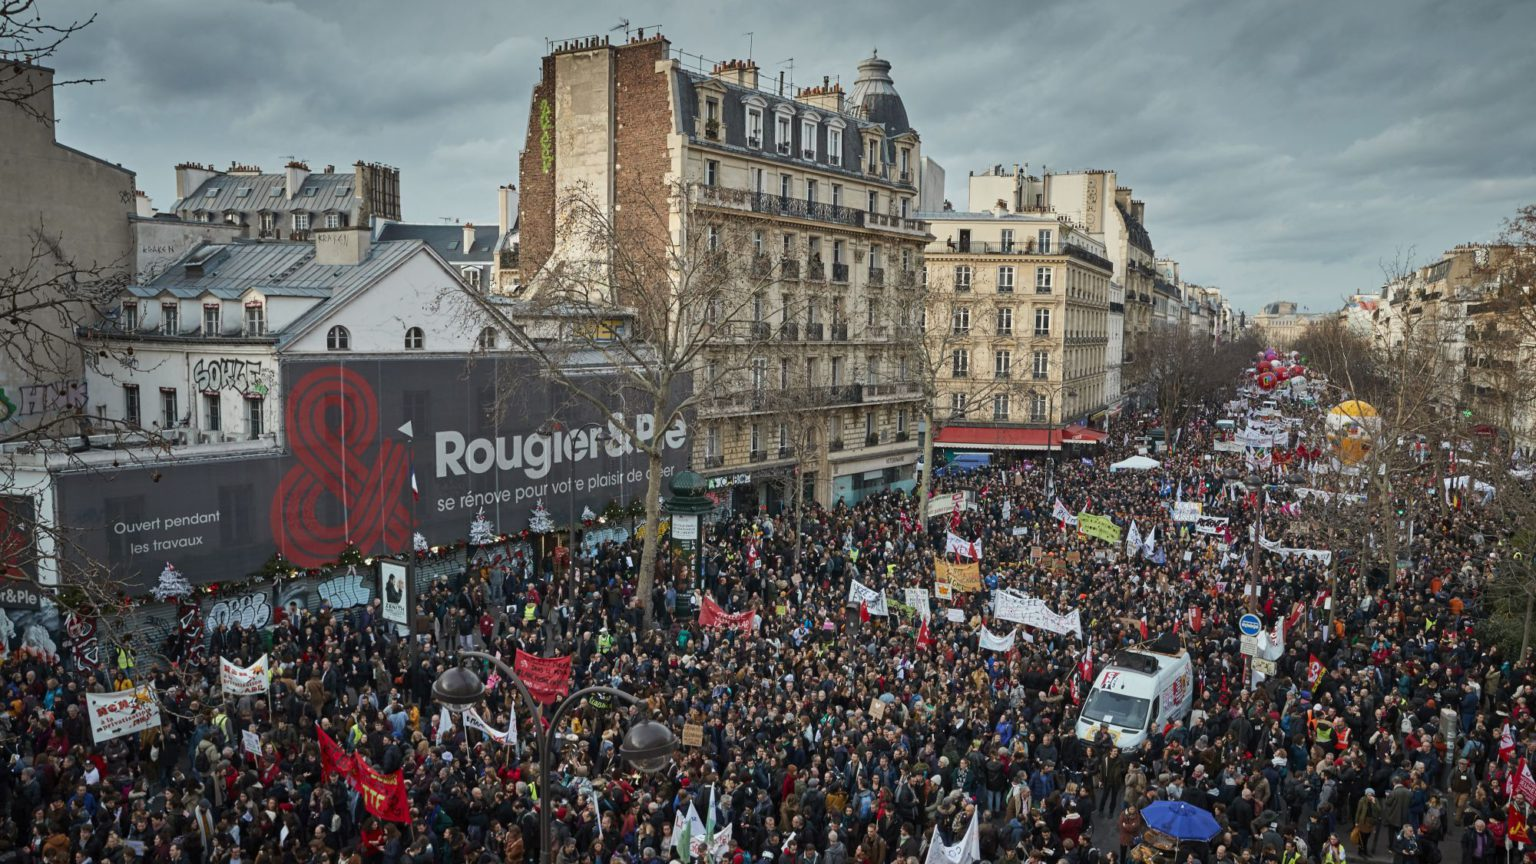 Another people's revolt in France